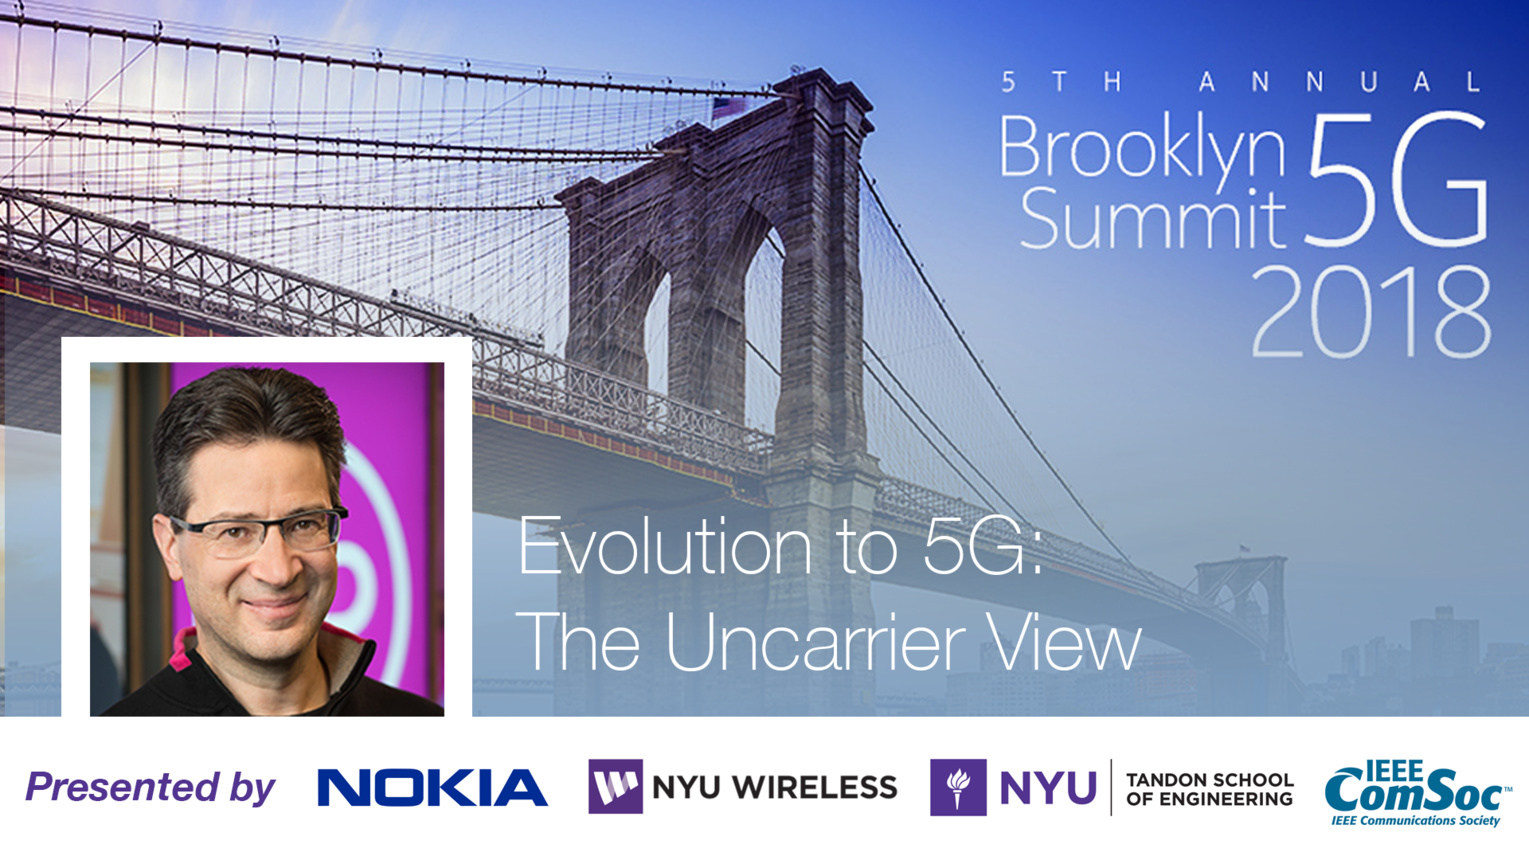 Evolution to 5G: The Uncarrier View - Karri Kuoppamaki - Brooklyn 5G Summit 2018